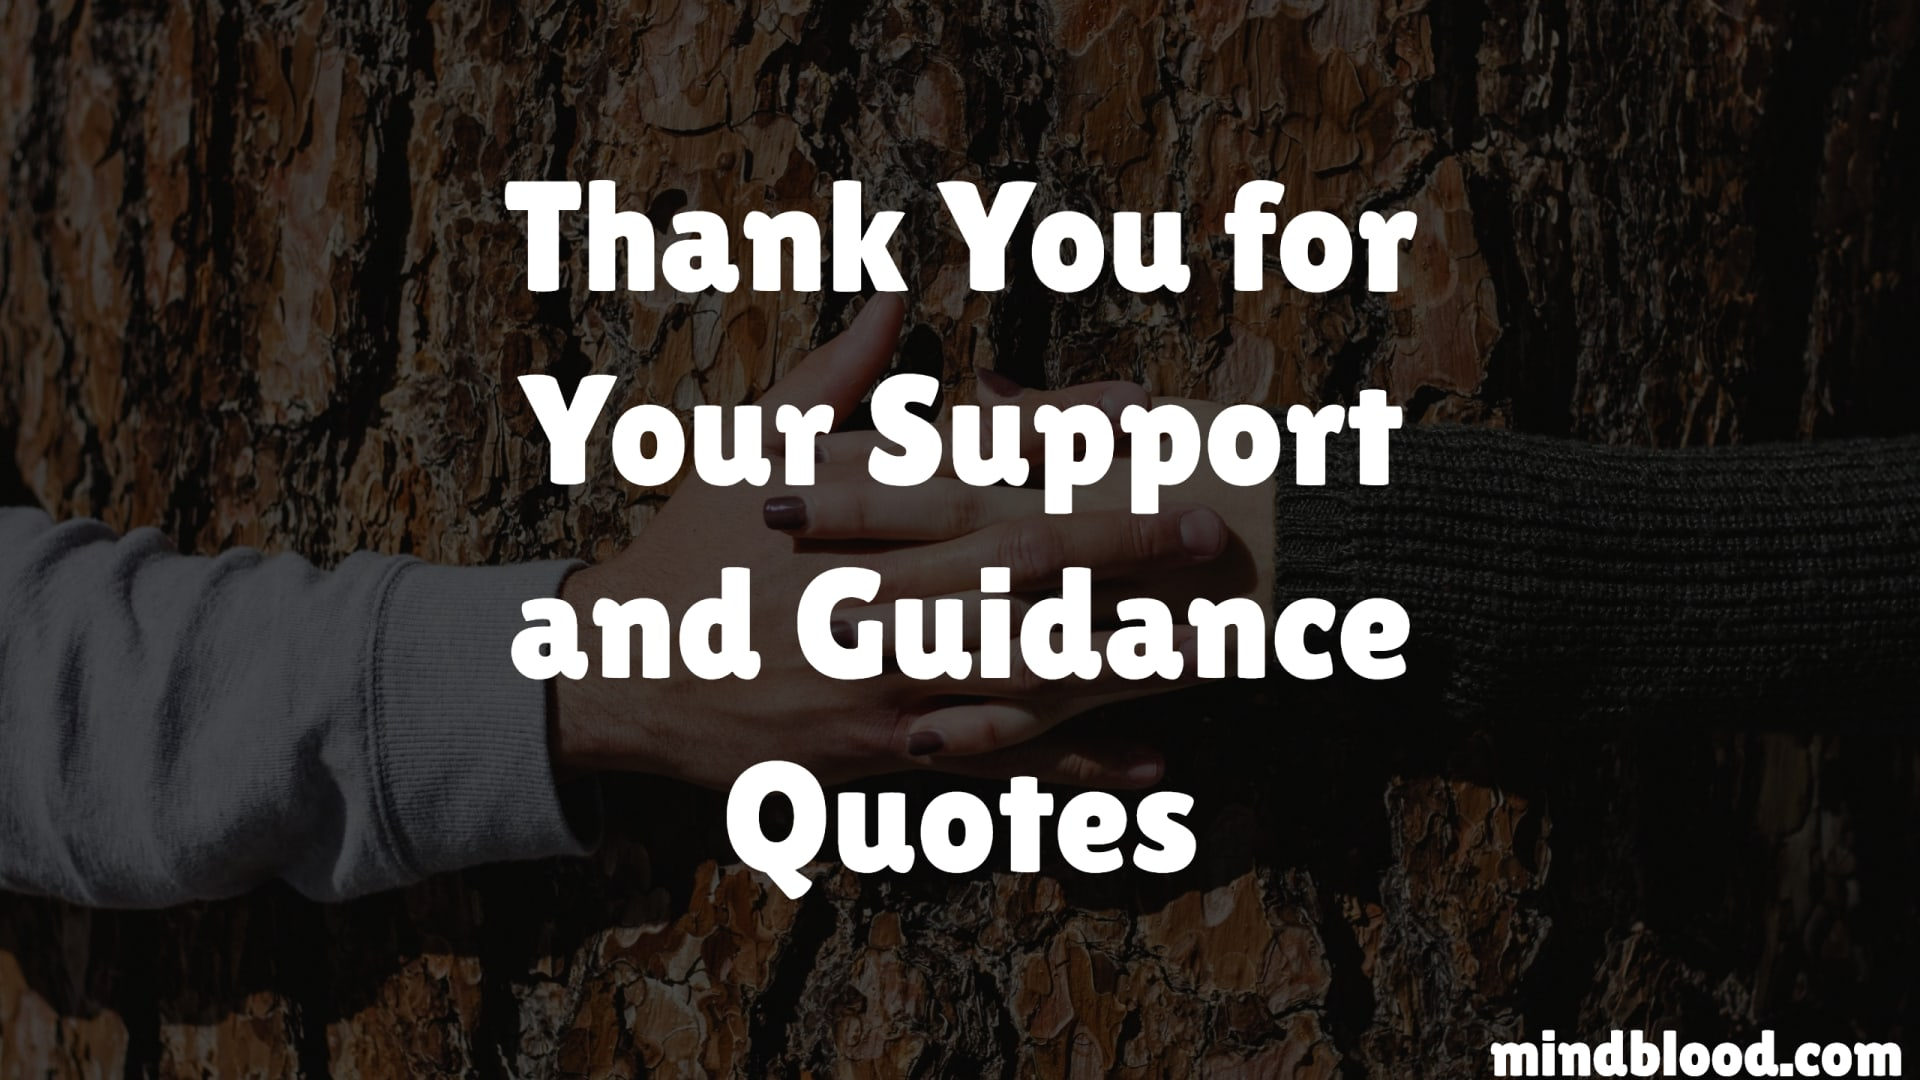 Thank You for Your Support and Guidance Quotes